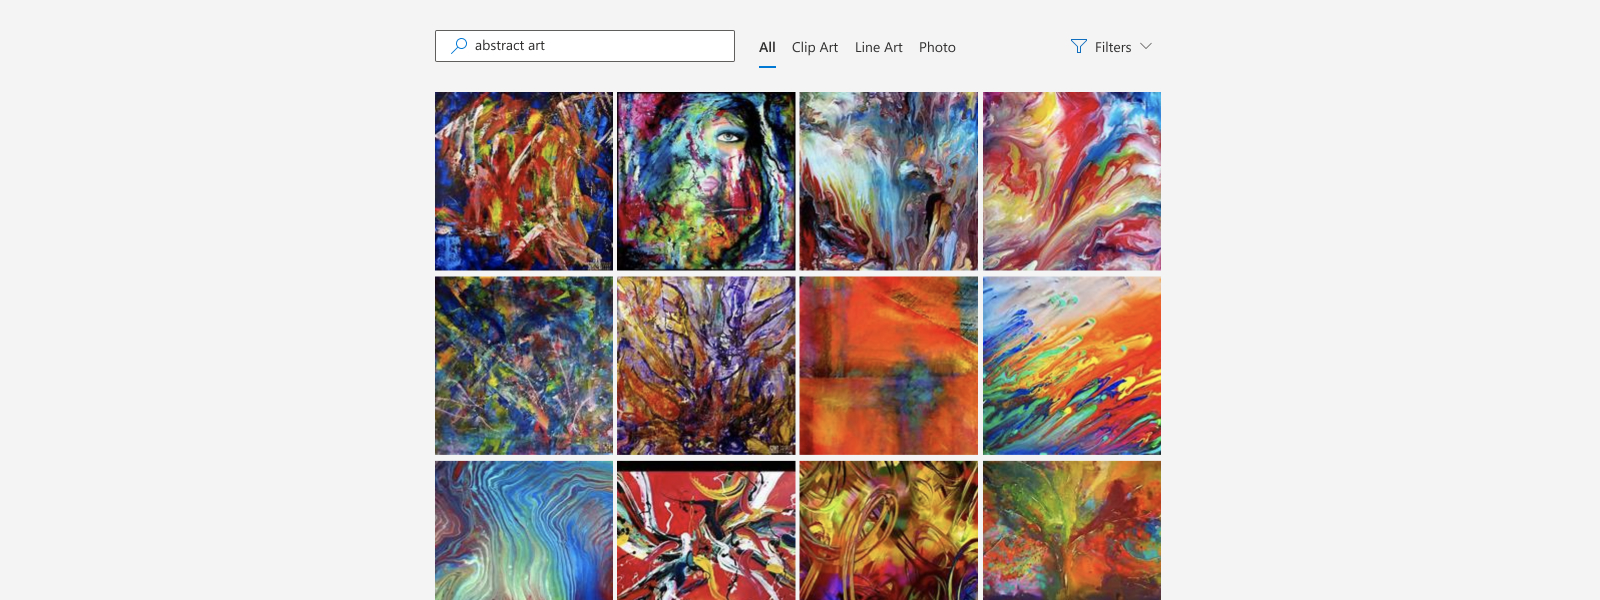 Illustration of generic image search for search term �Abstract art� and its results.